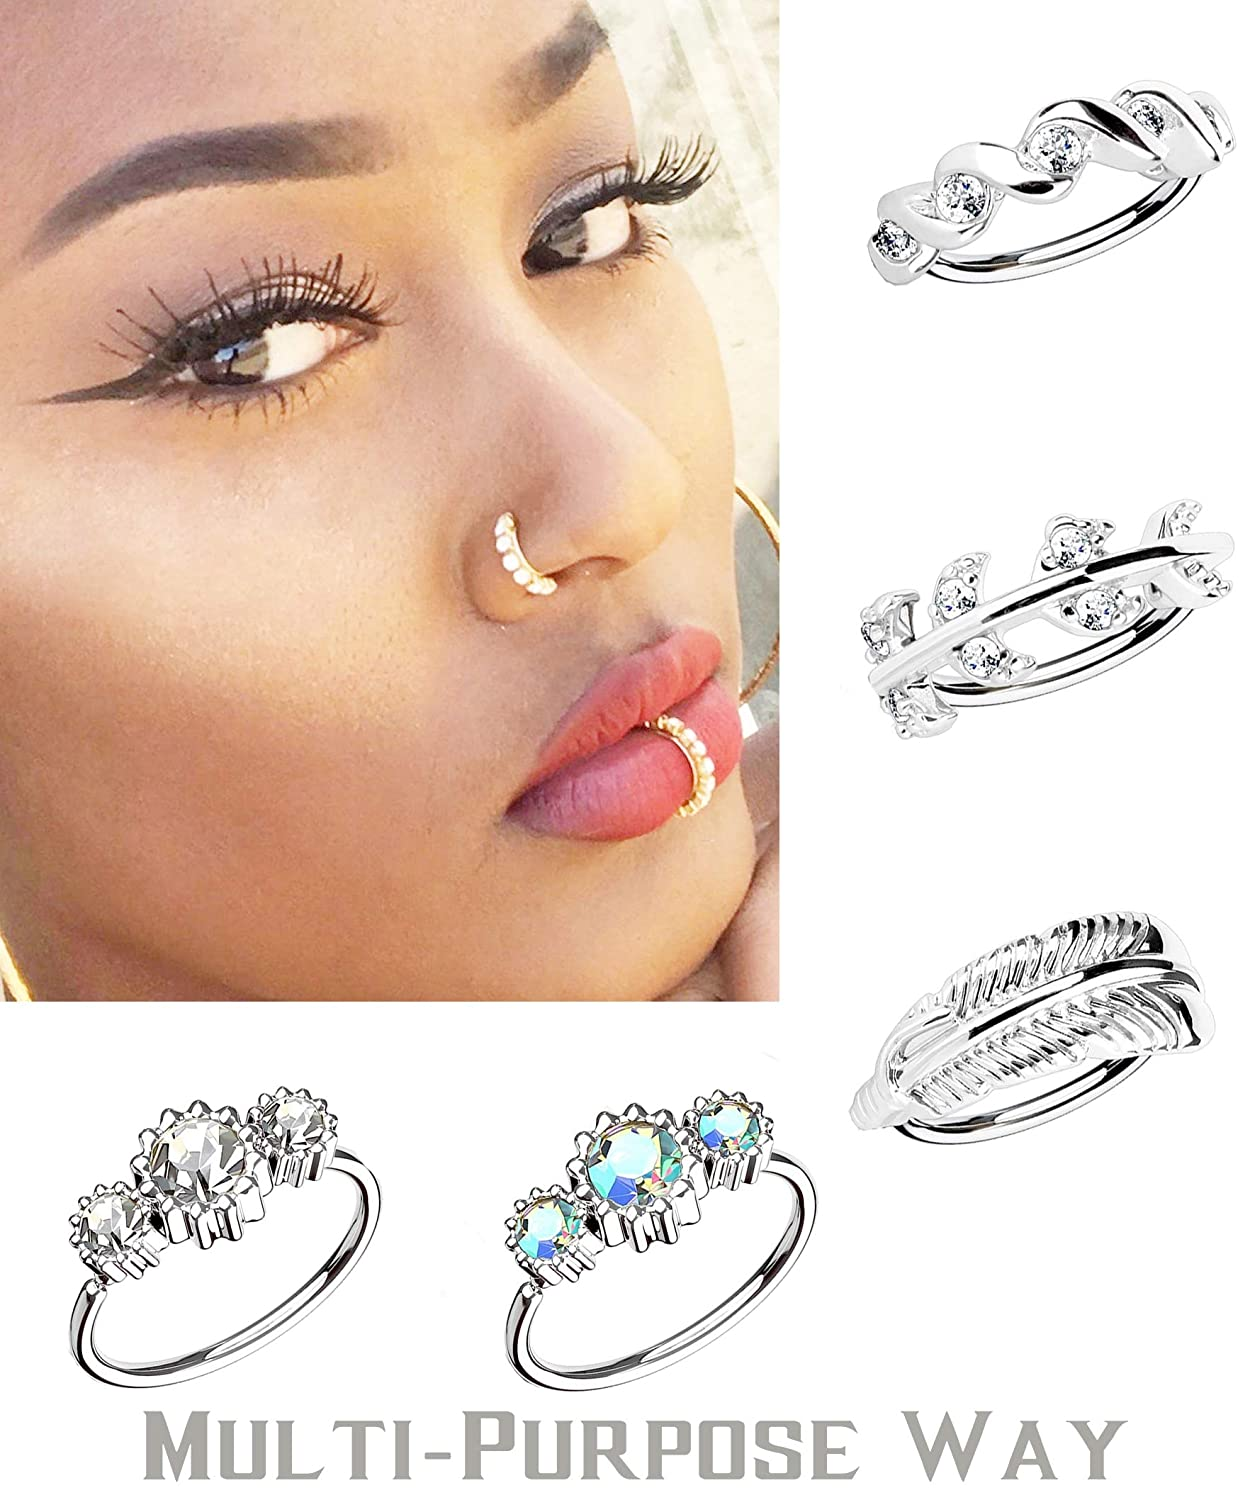 5pcs Silver Tone LOYALLOOK 18-20G Nose Ring Nose Piercing Hoop Paved CZ Crawler Surgical Steel Cartilage Surgical Steel Daith Earrings 5Pcs